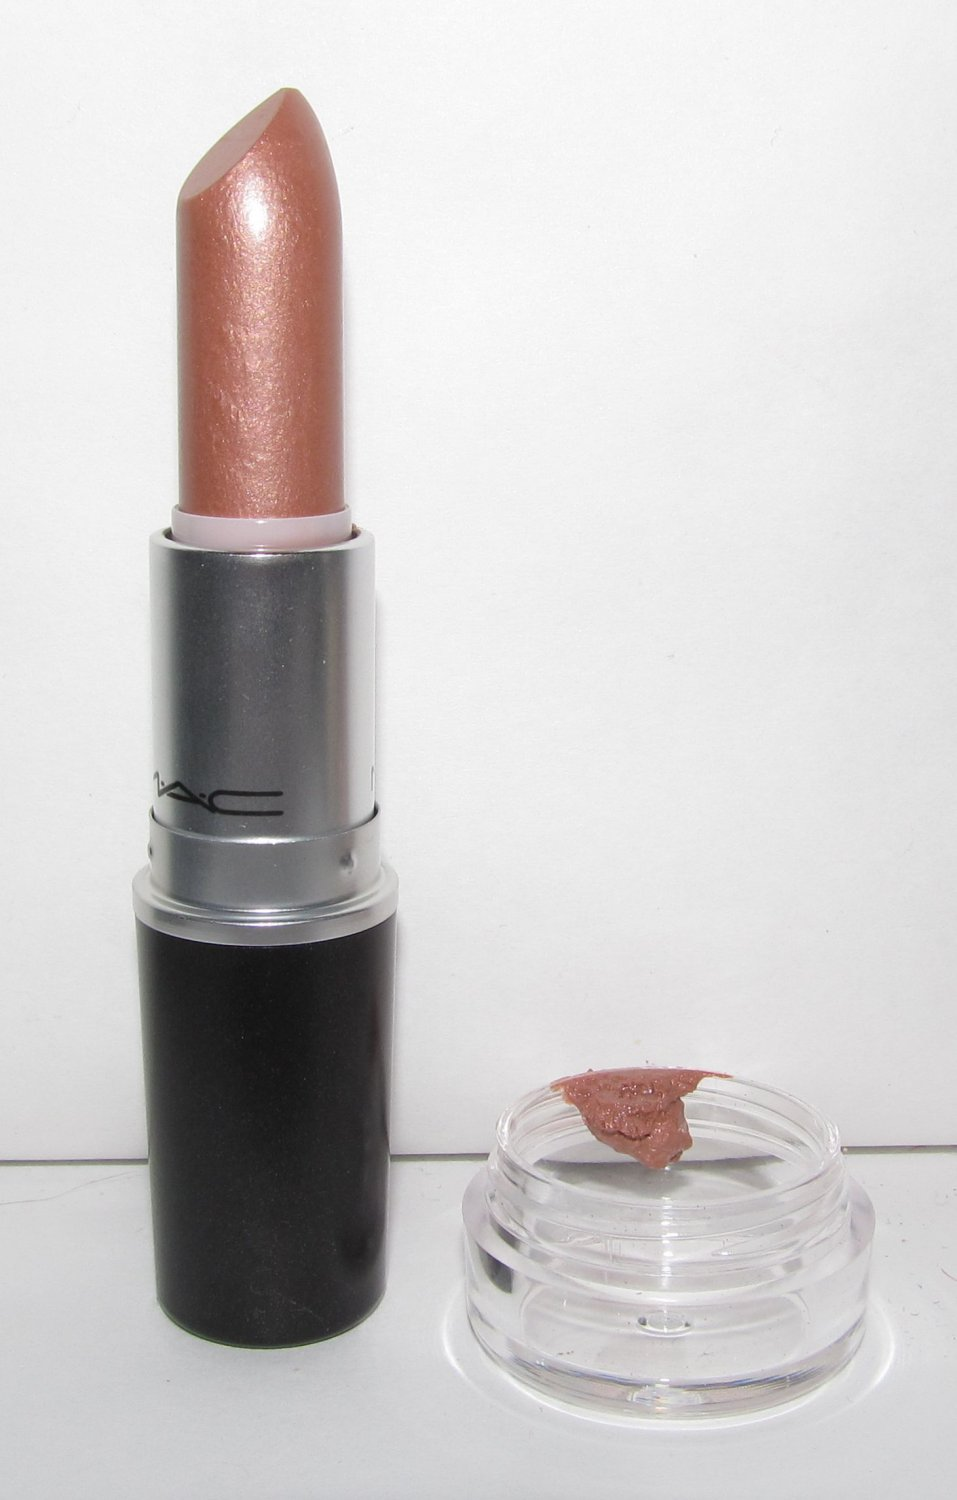 Find great deals on eBay for mac lipstick samples. Shop with confidence.